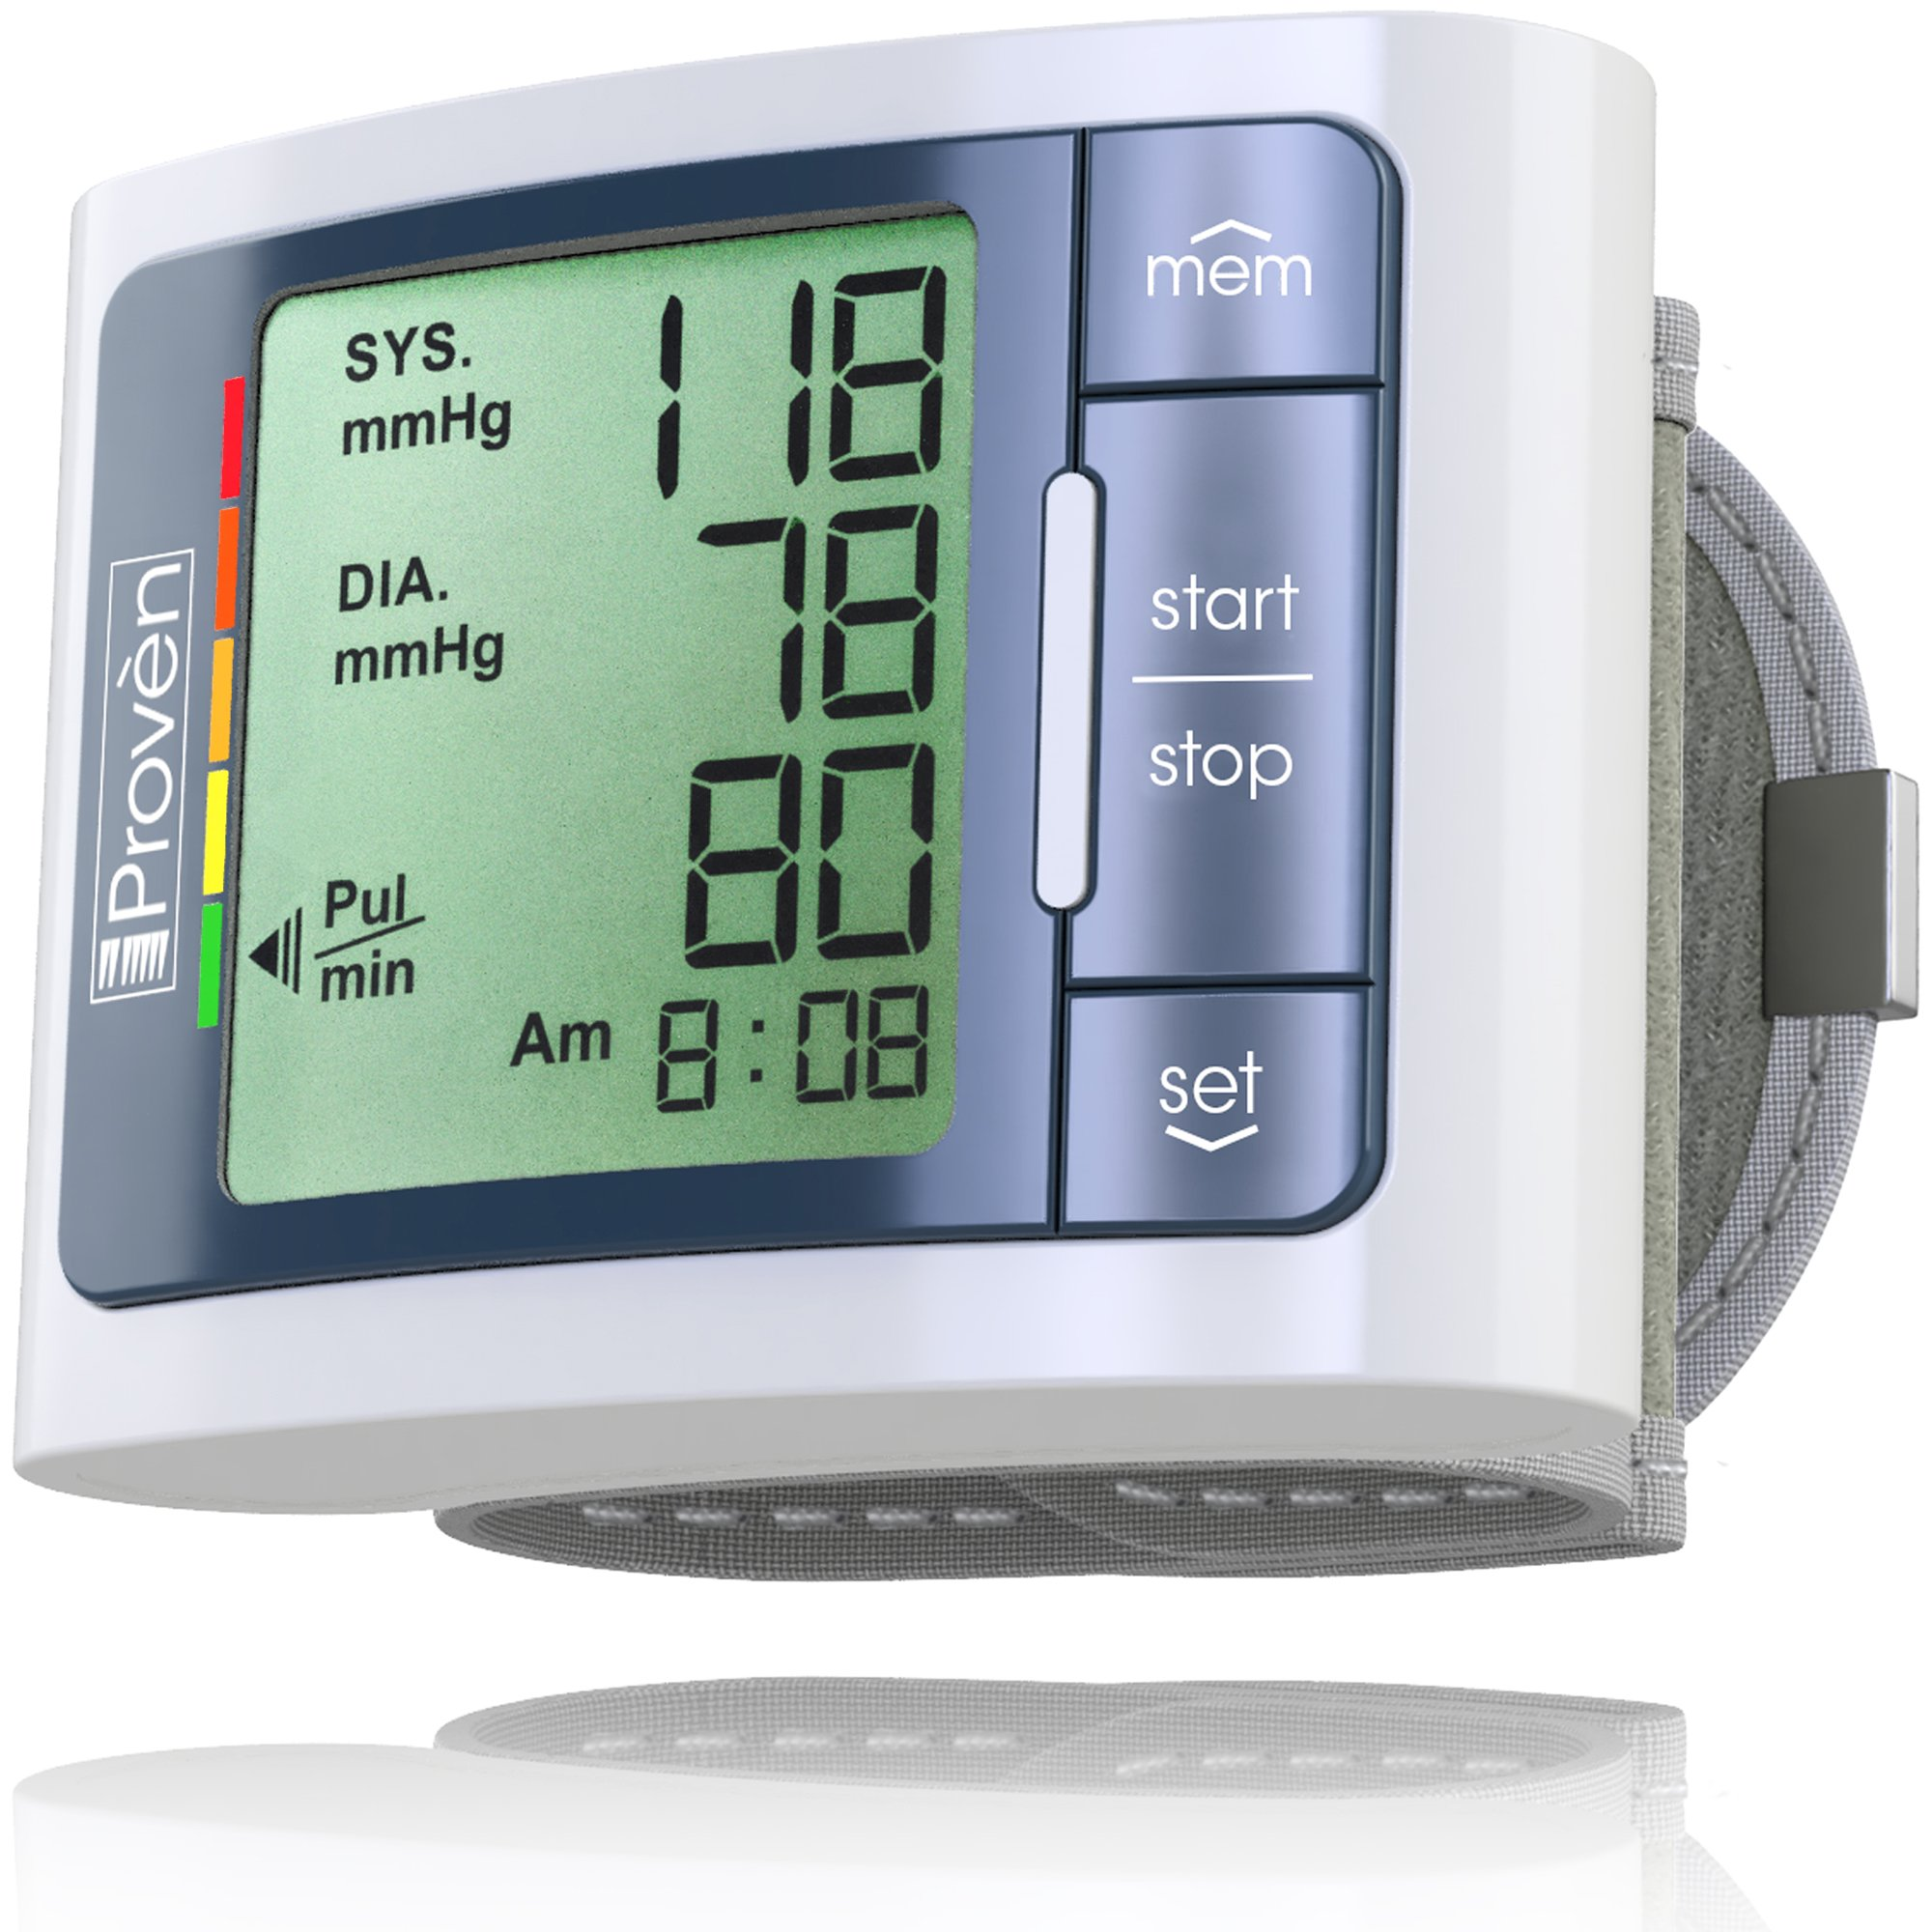 Blood Pressure Monitor Wrist - Large Screen Display - Clinically Accurate & Fast Reading - FDA Approved - BPM-337 by Iprovèn (BPM Wrist)